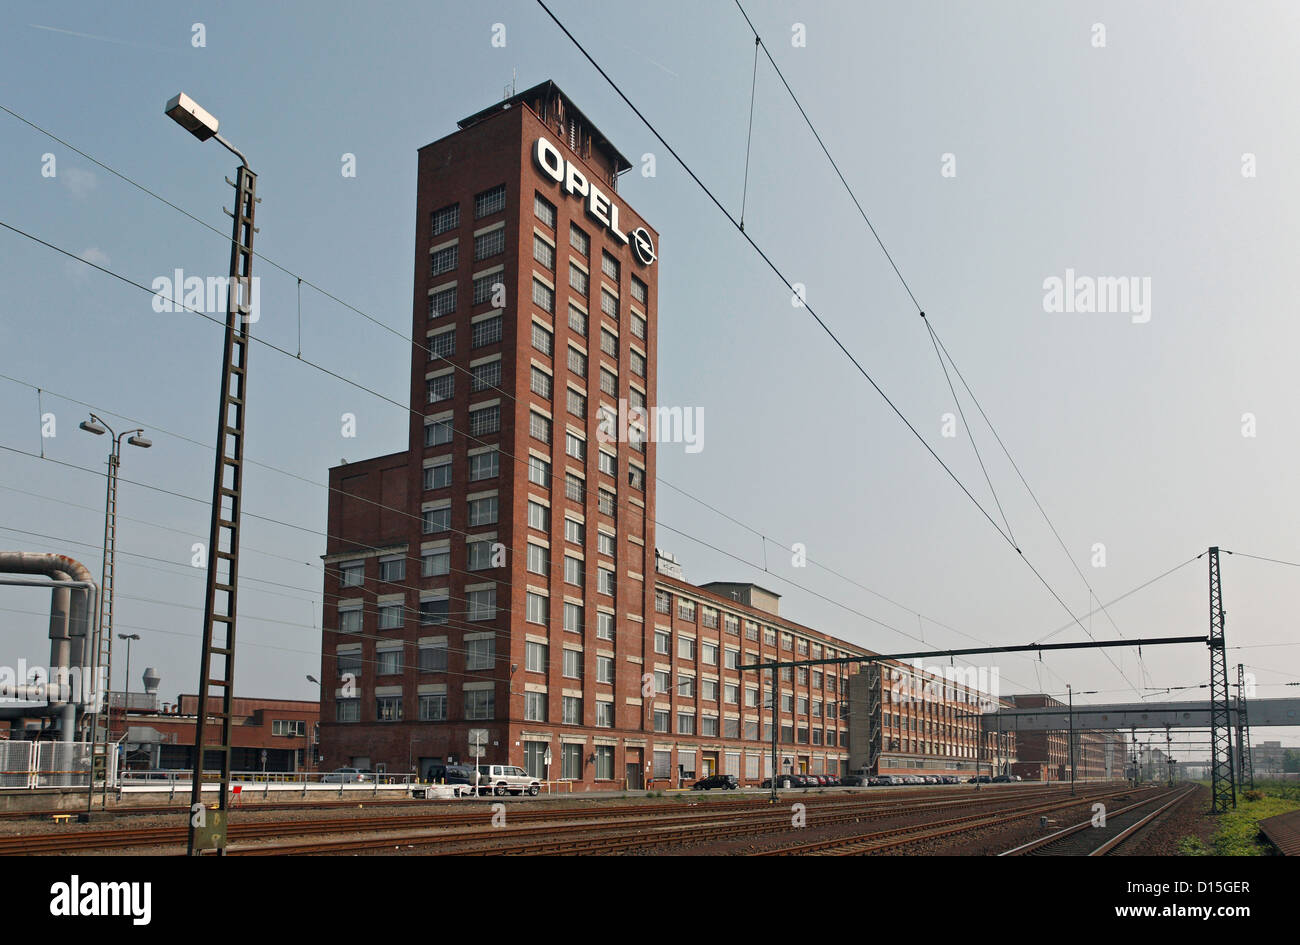 russelsheim germany opel tower of adam opel gmbh stock photo 52368479 alamy. Black Bedroom Furniture Sets. Home Design Ideas